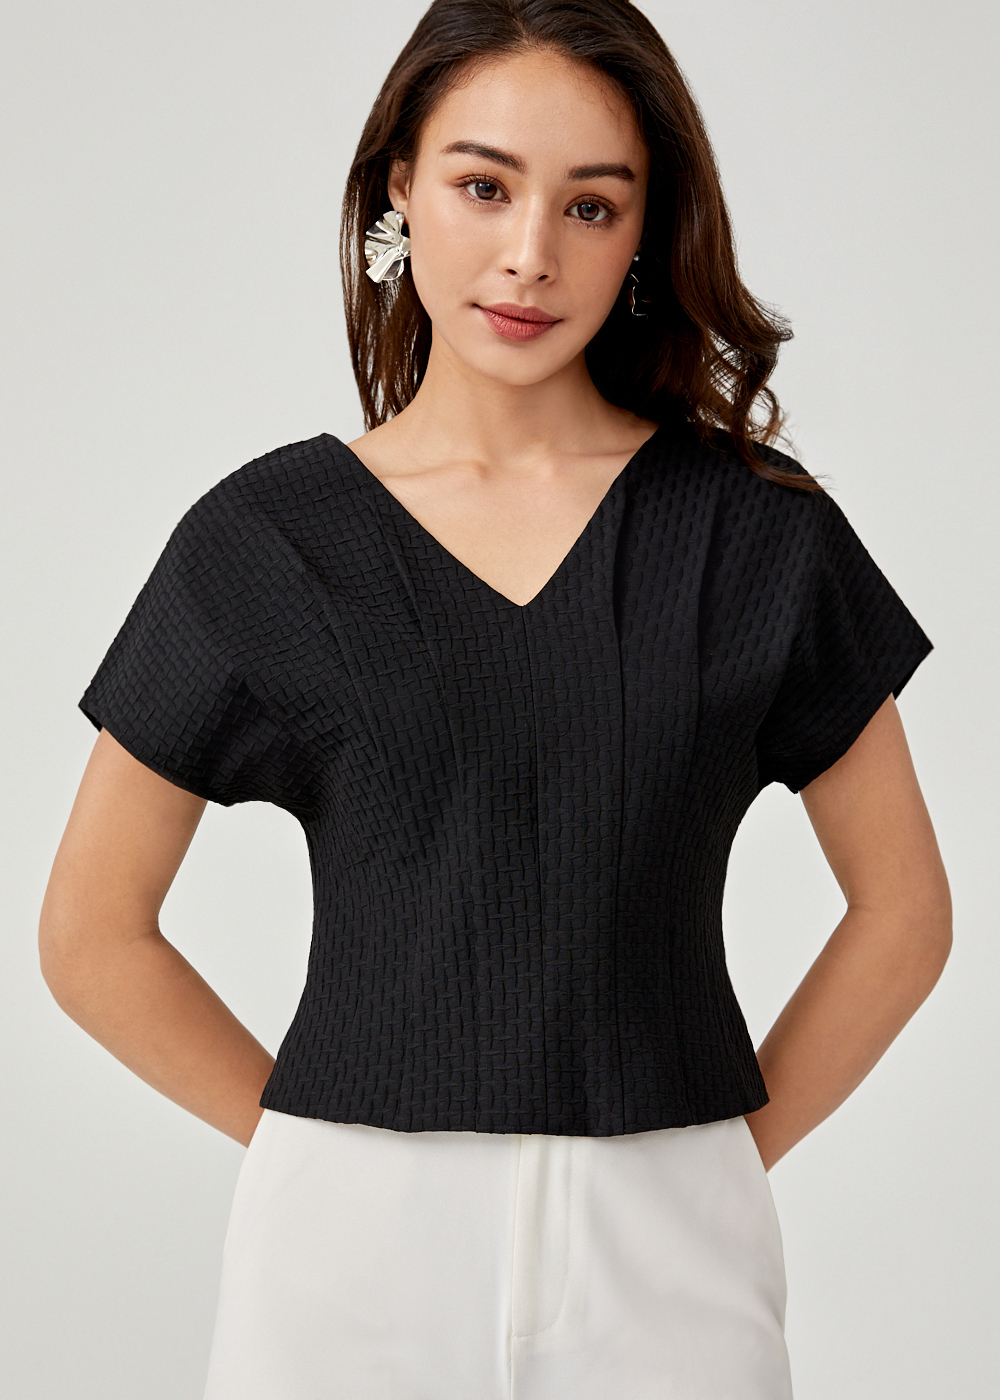 Cambria Jacquard V-neck Top